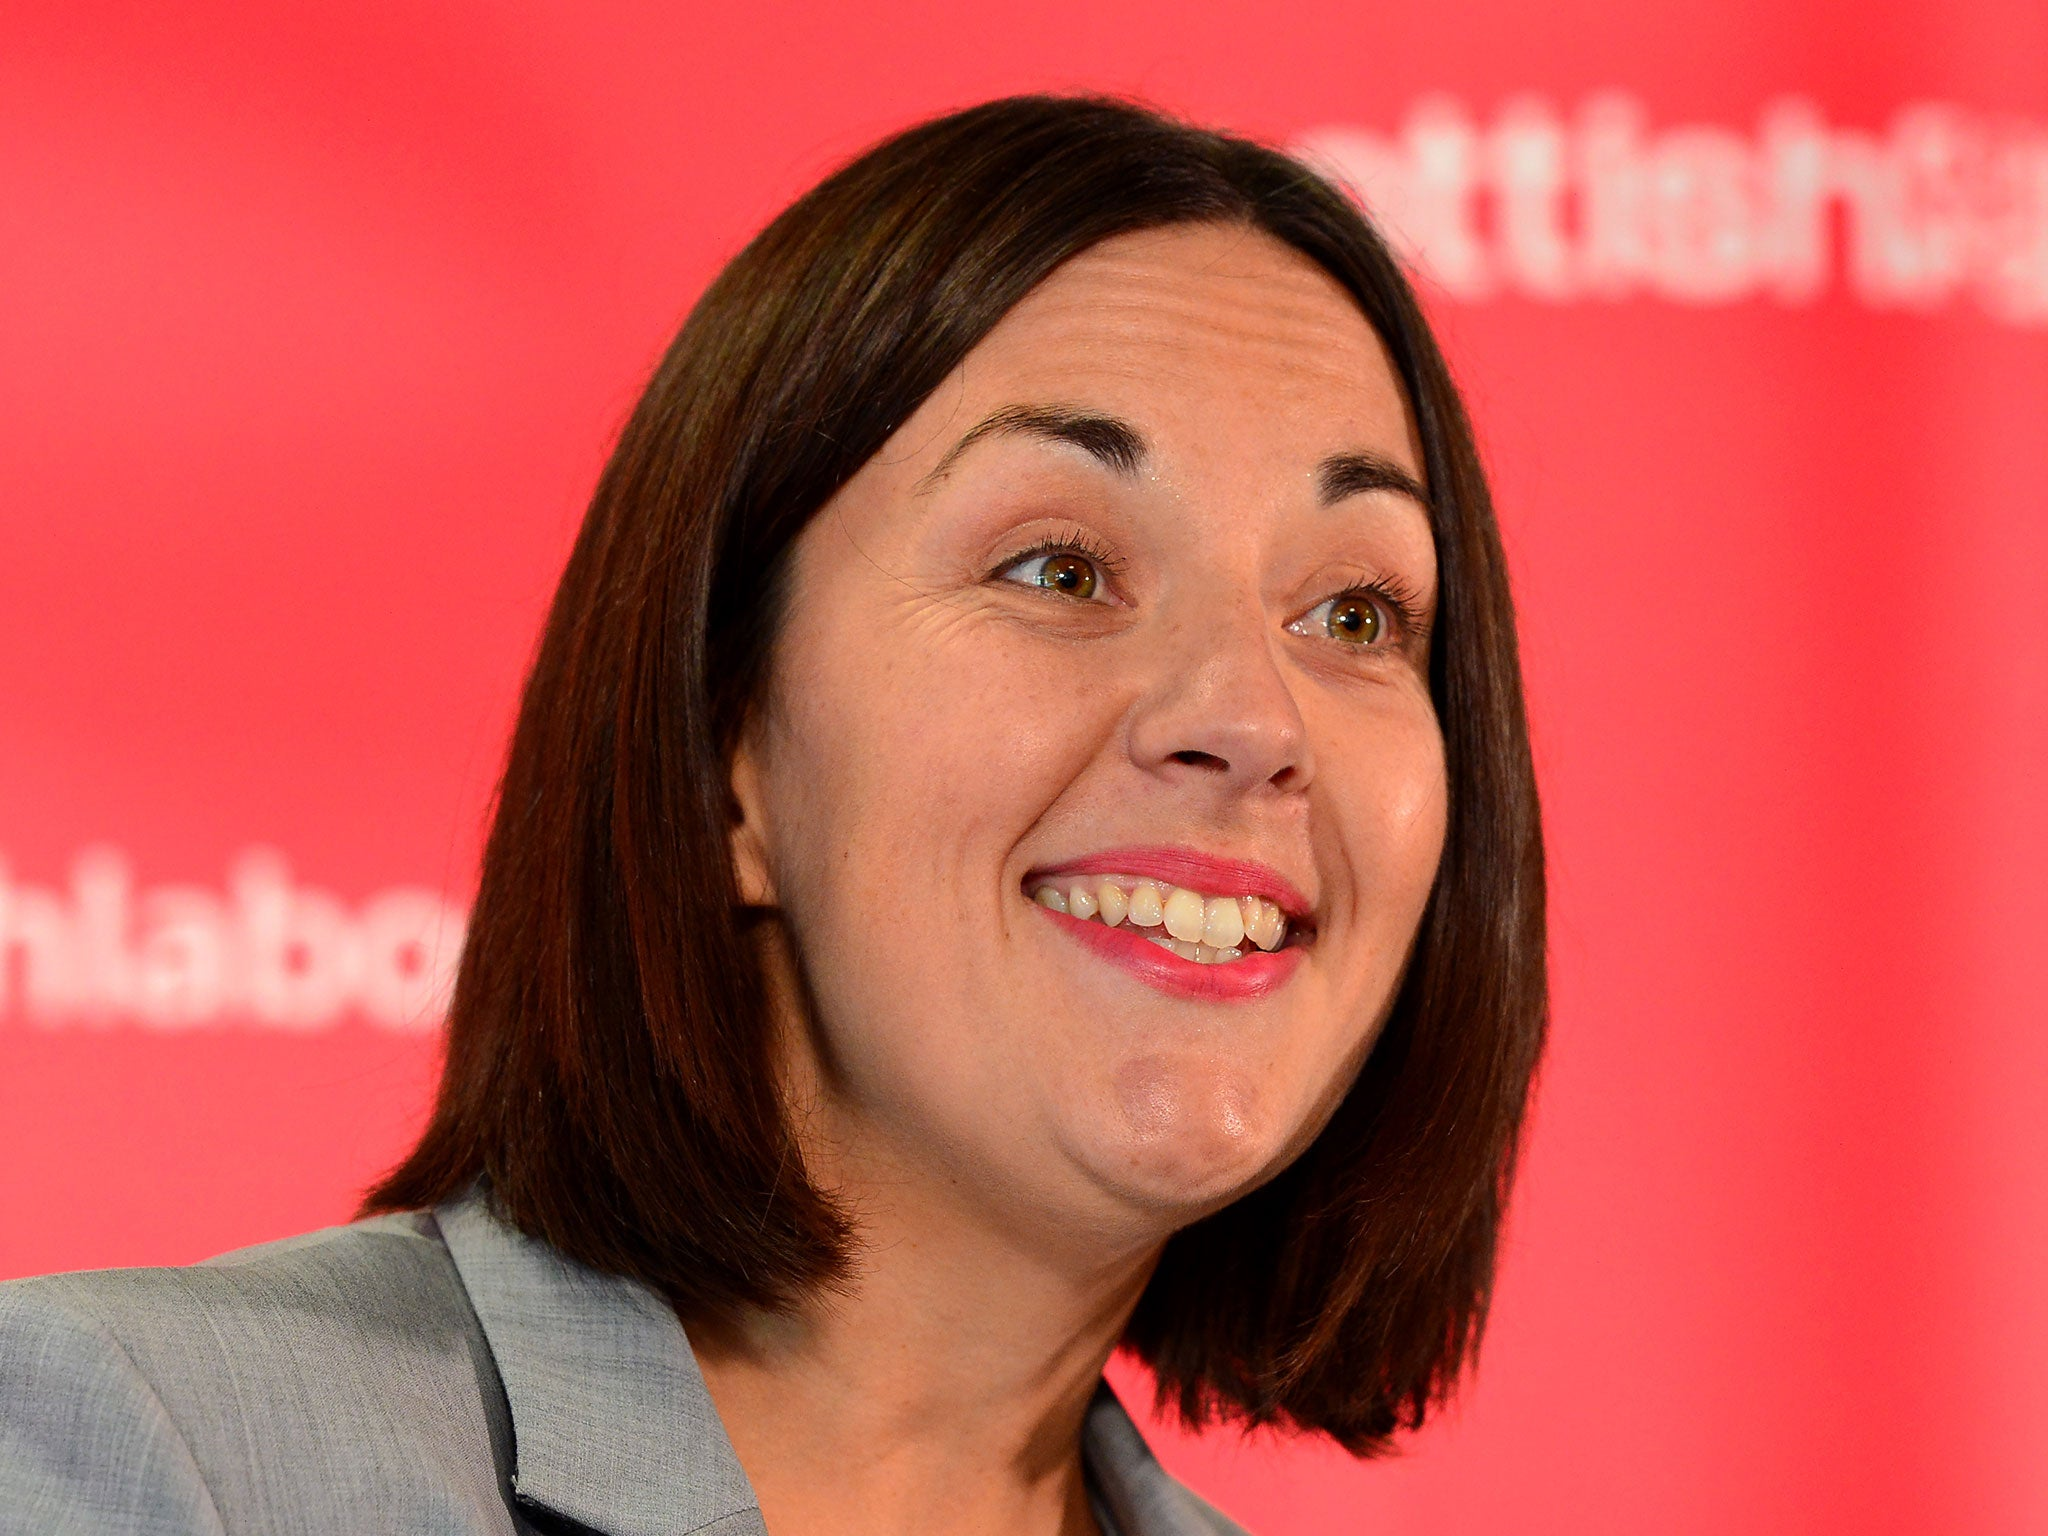 Takkodas Pets Rock Cast Of Characters further Even Kezia Dugdale Knows That People In Scotland Have Stopped Listening To Labour Altogether 10459620 moreover Uppity wow face additionally Adriana Lima likewise 0e5b78de4677897209ae655c020a047d  Carmelo Meme Goes Viral 3072 1794. on funny faces of people